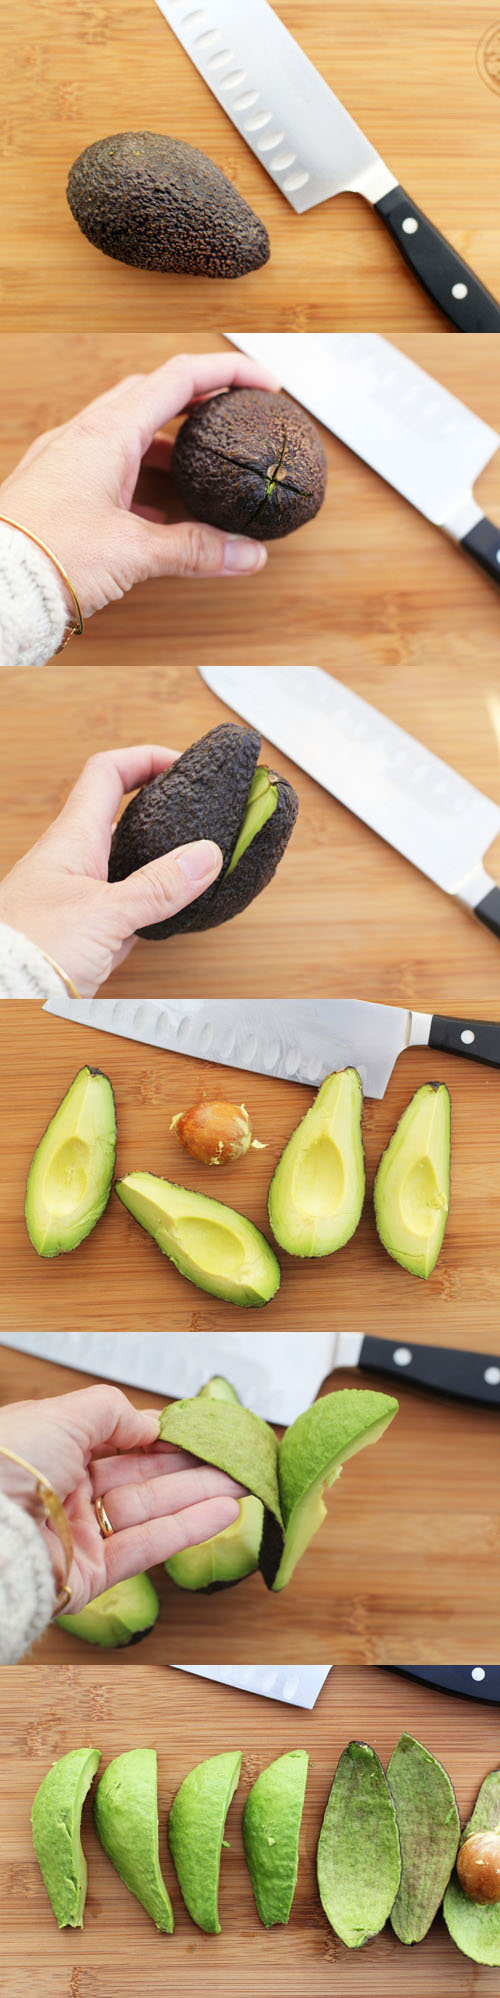 pitting and cutting avocados by @janemaynard